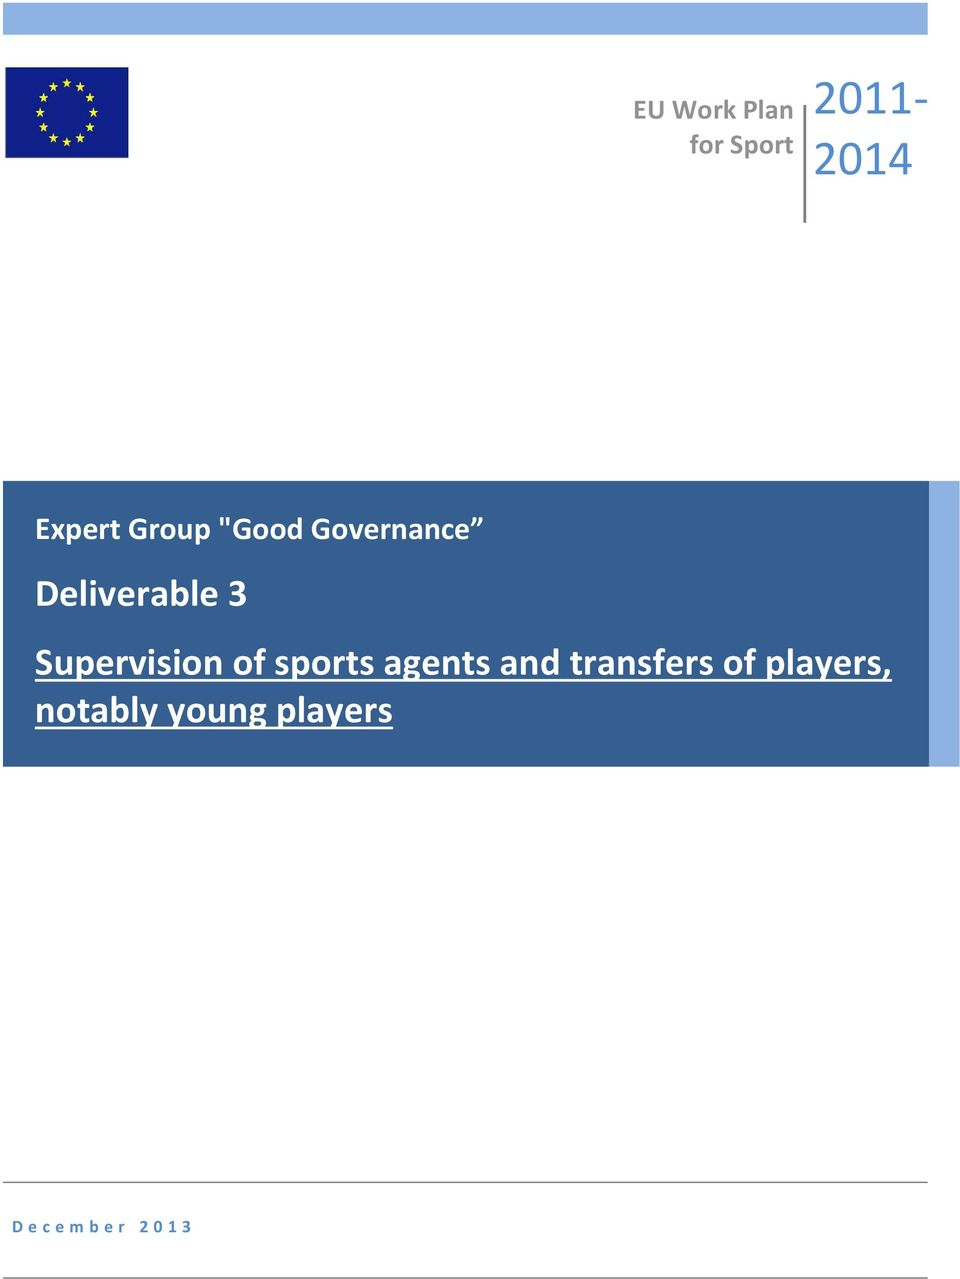 Supervision of sports agents and transfers